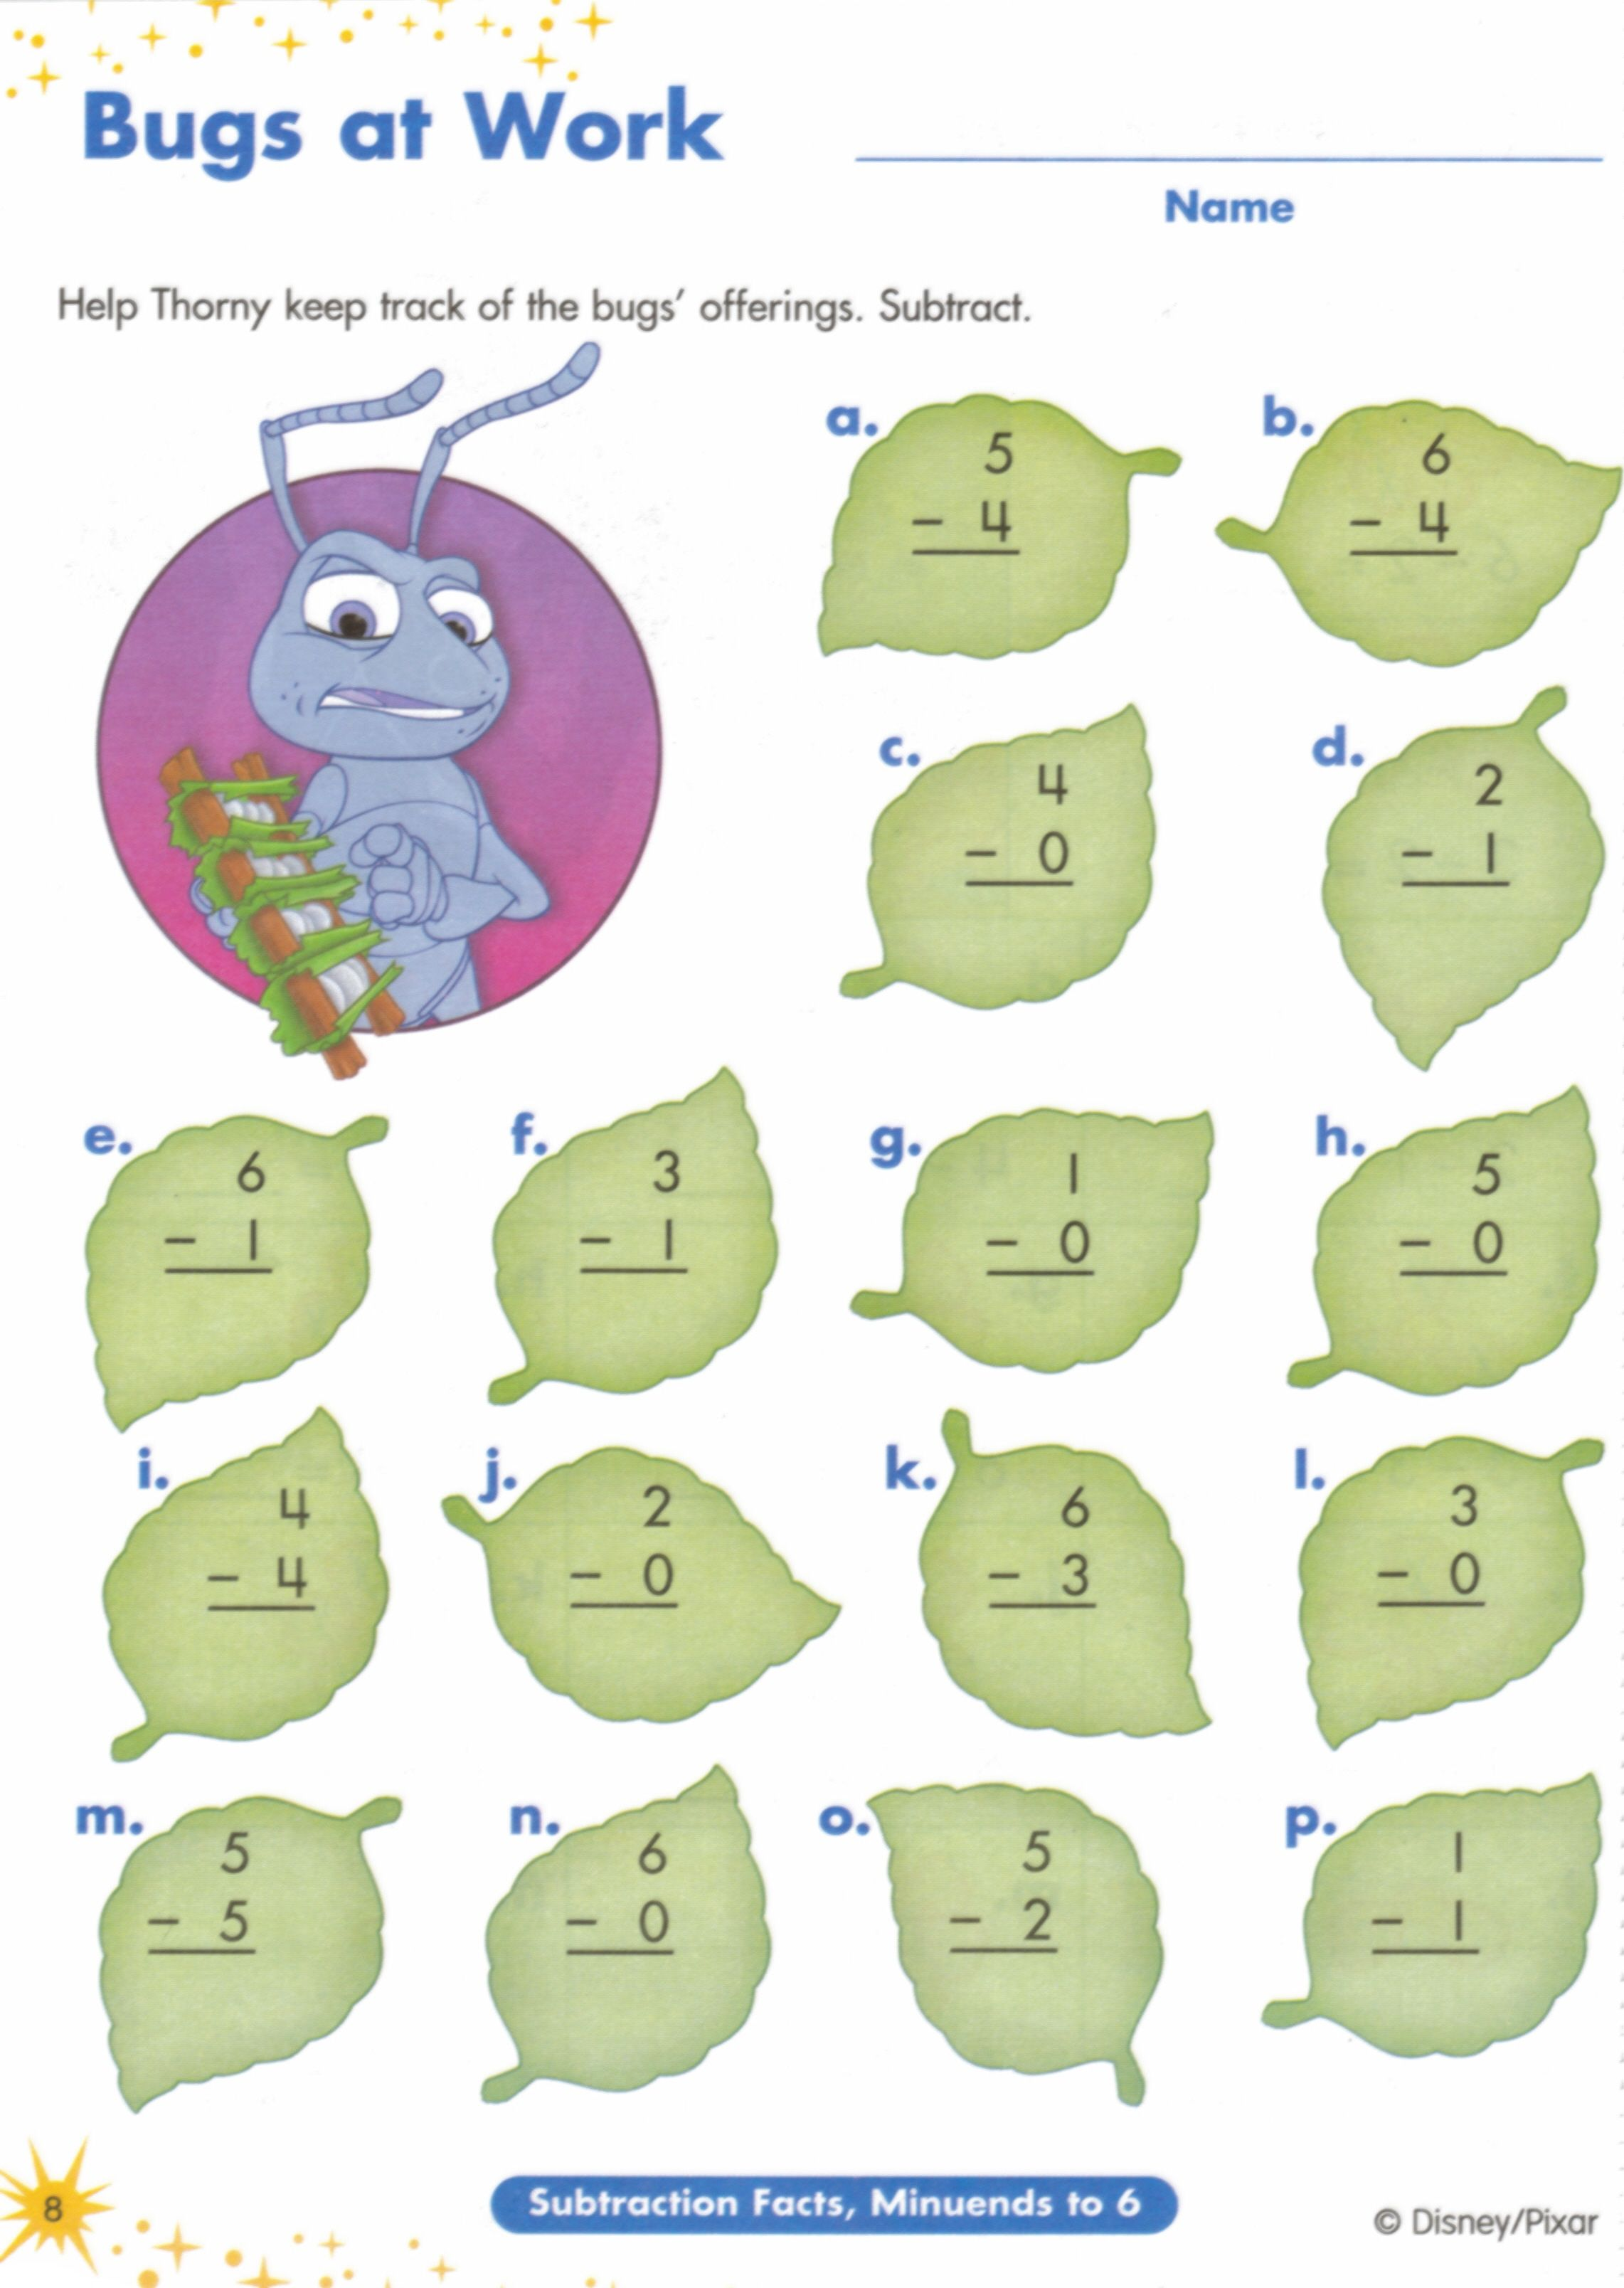 Proatmealus  Pretty  Images About Worksheets On Pinterest  Fun Facts For Kids  With Magnificent  Images About Worksheets On Pinterest  Fun Facts For Kids Earth Day Worksheets And Jungles With Alluring Simplifying Fractions Worksheet Pdf Also Mole Calculations Worksheet Answers In Addition Summarizing Th Grade Worksheets And Sense Organs Worksheets For Grade  As Well As Dying To Be Thin Worksheet Additionally Writing Sentences Year  Worksheets From Pinterestcom With Proatmealus  Magnificent  Images About Worksheets On Pinterest  Fun Facts For Kids  With Alluring  Images About Worksheets On Pinterest  Fun Facts For Kids Earth Day Worksheets And Jungles And Pretty Simplifying Fractions Worksheet Pdf Also Mole Calculations Worksheet Answers In Addition Summarizing Th Grade Worksheets From Pinterestcom